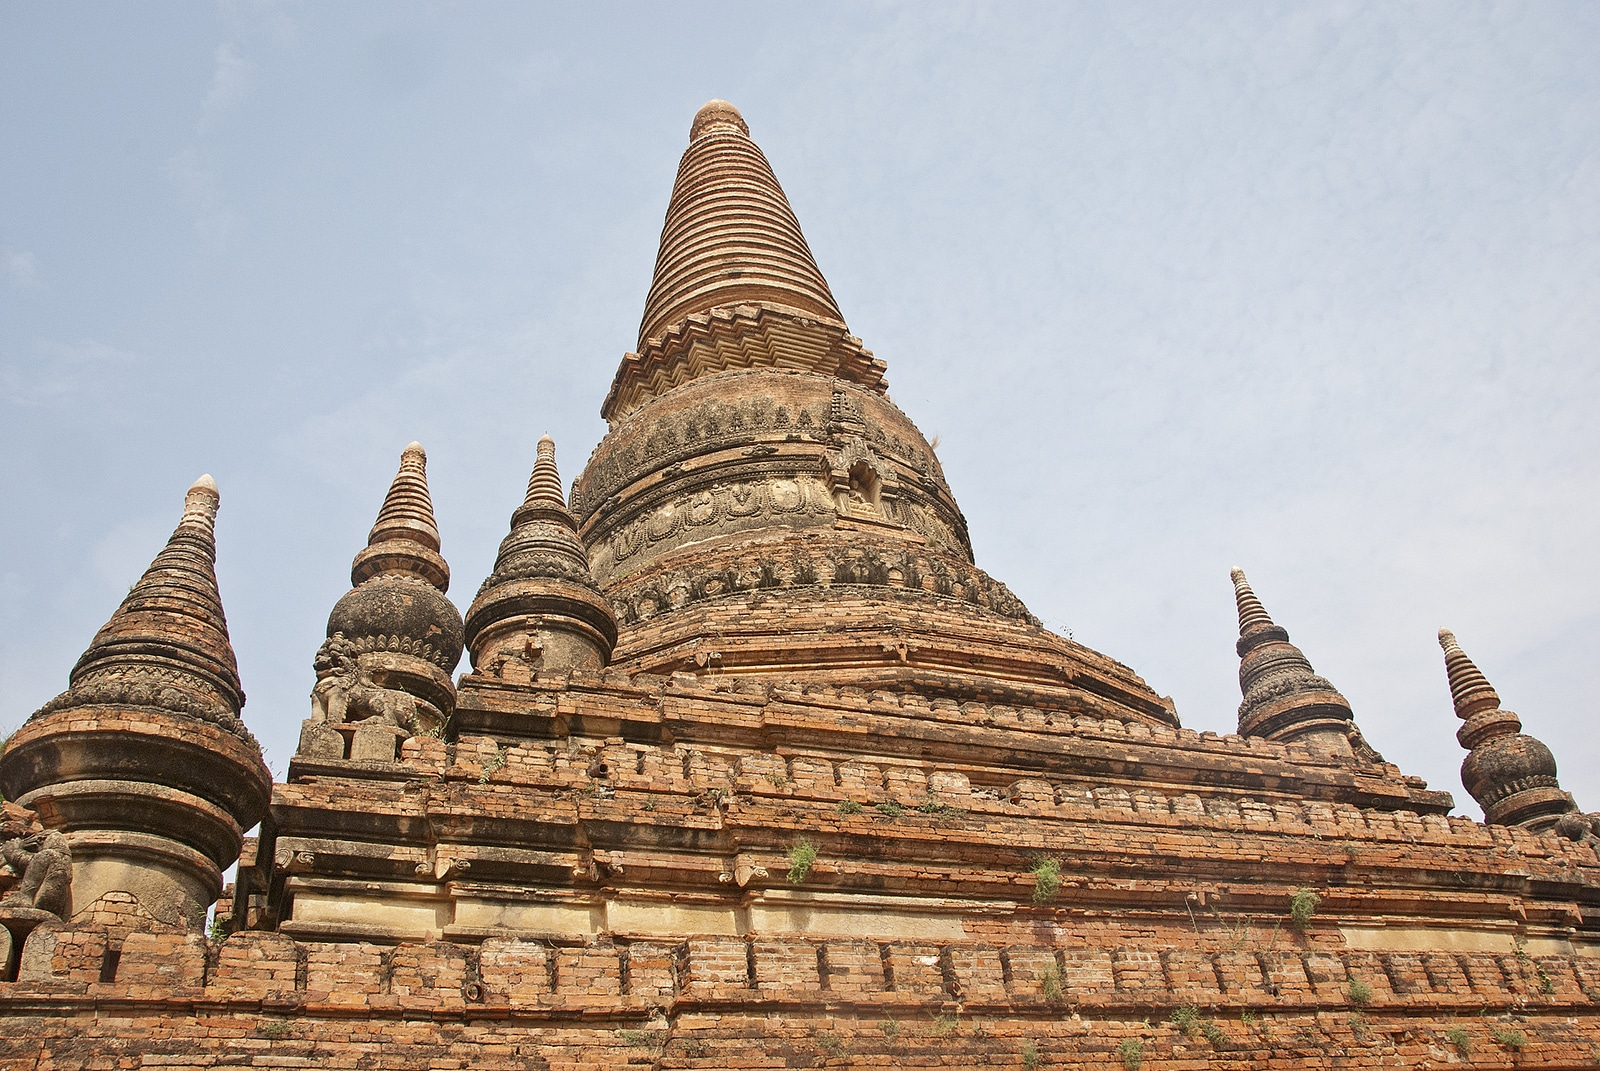 Temple in Bagan, Myanmar - Lost With Purpose